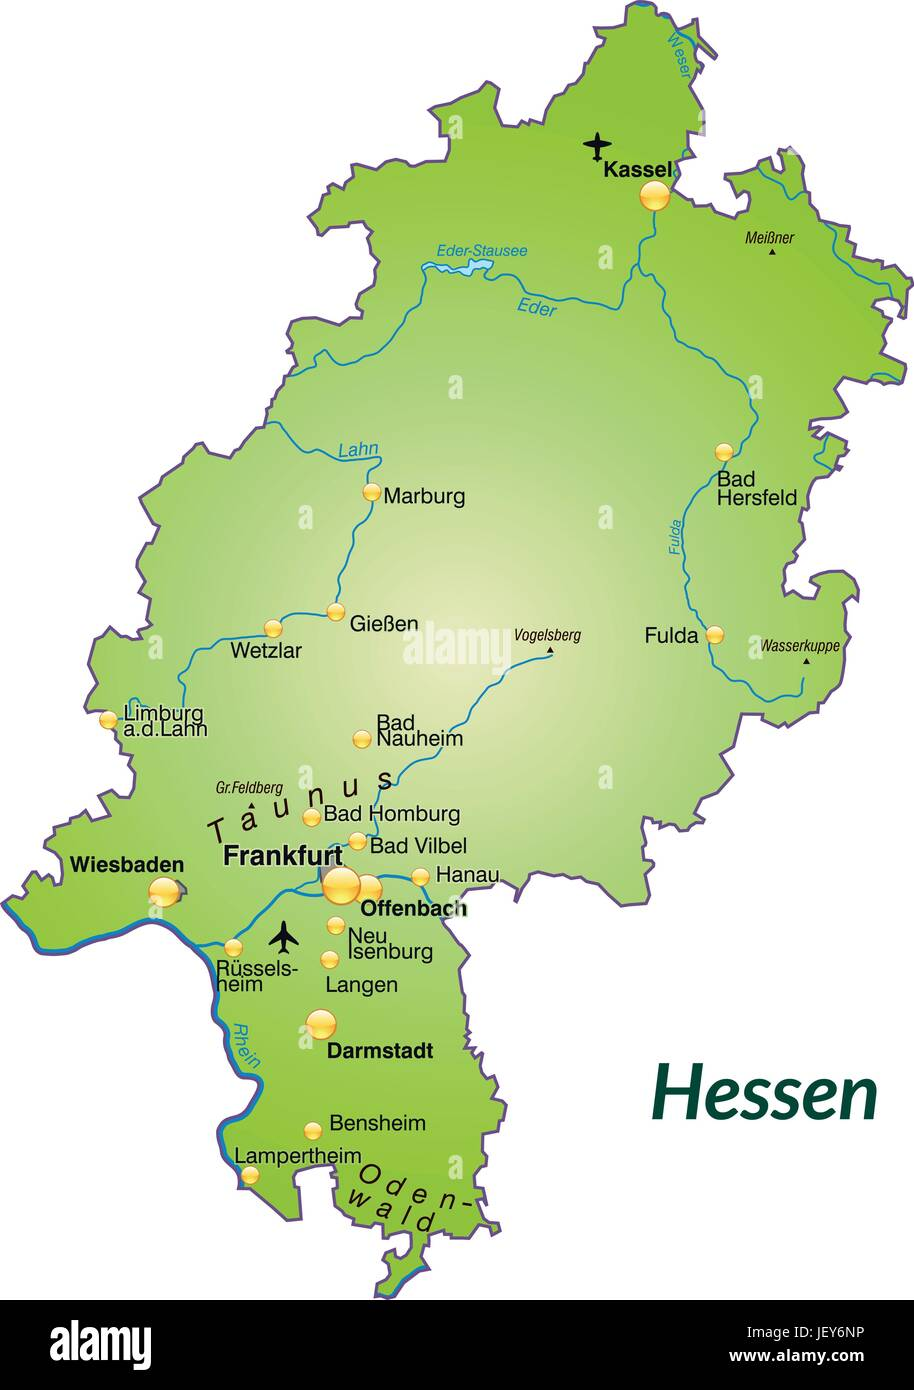 Bad Homburg Germany Map.Hessen In Germany As An Island Map With All The Important Stock